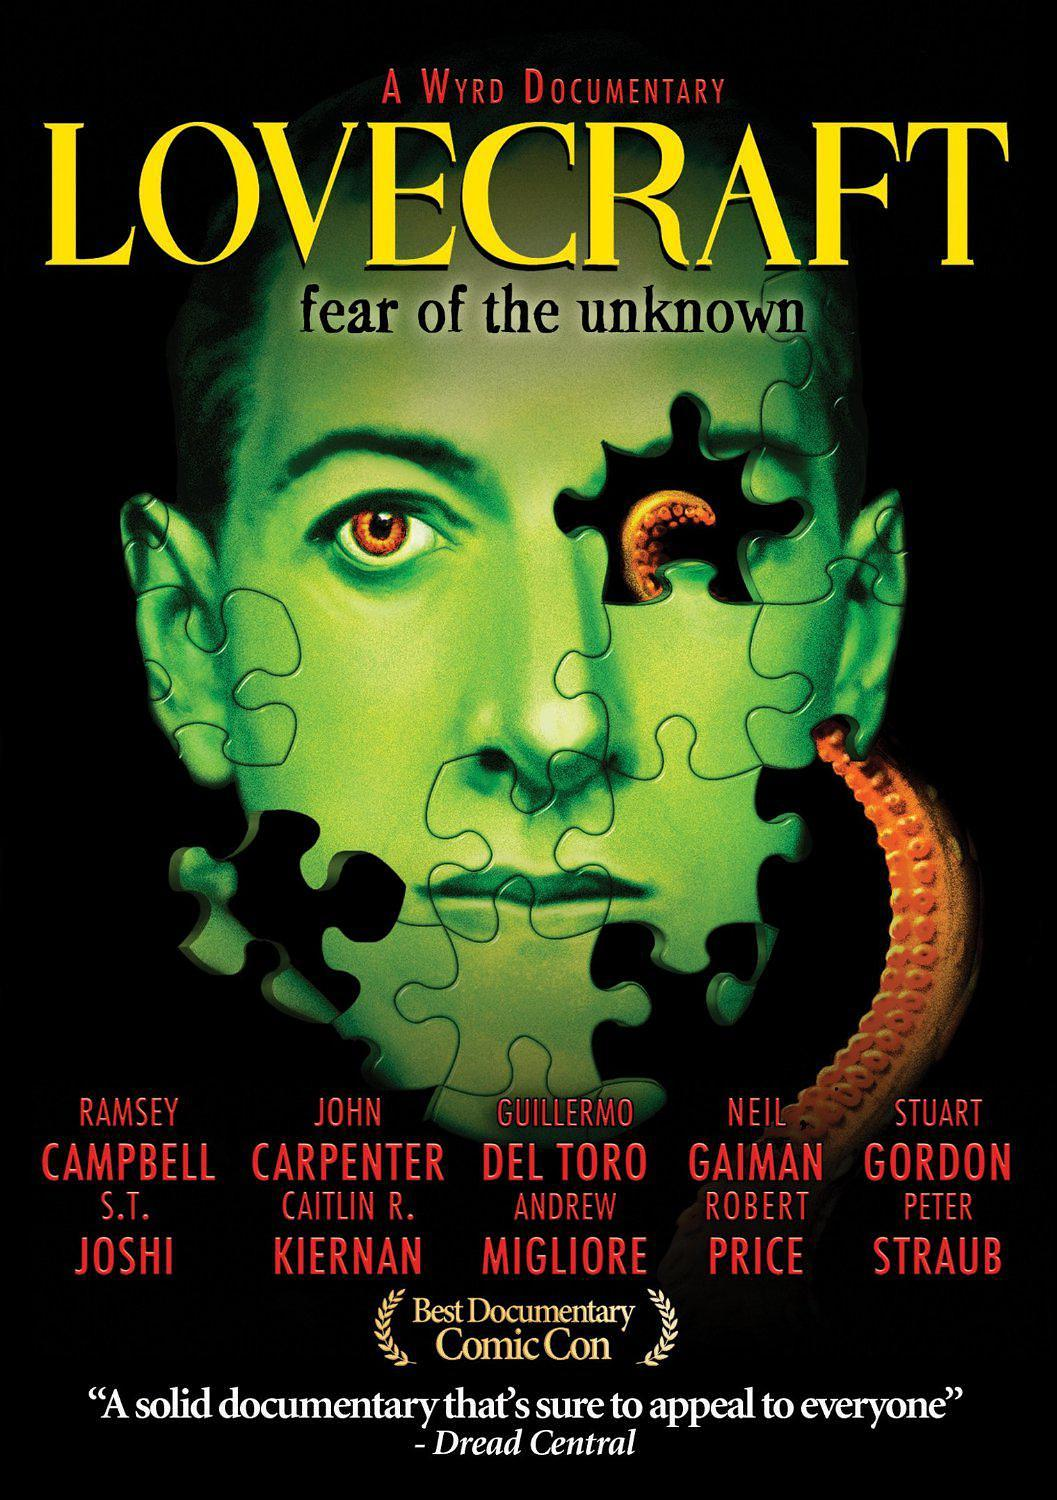 悠悠MP4_MP4电影下载_洛夫克拉夫特:未知的恐惧 Lovecraft.Fear.of.the.Unknown.2008.1080p.BluRay.x264-PUZZLE 8.75GB